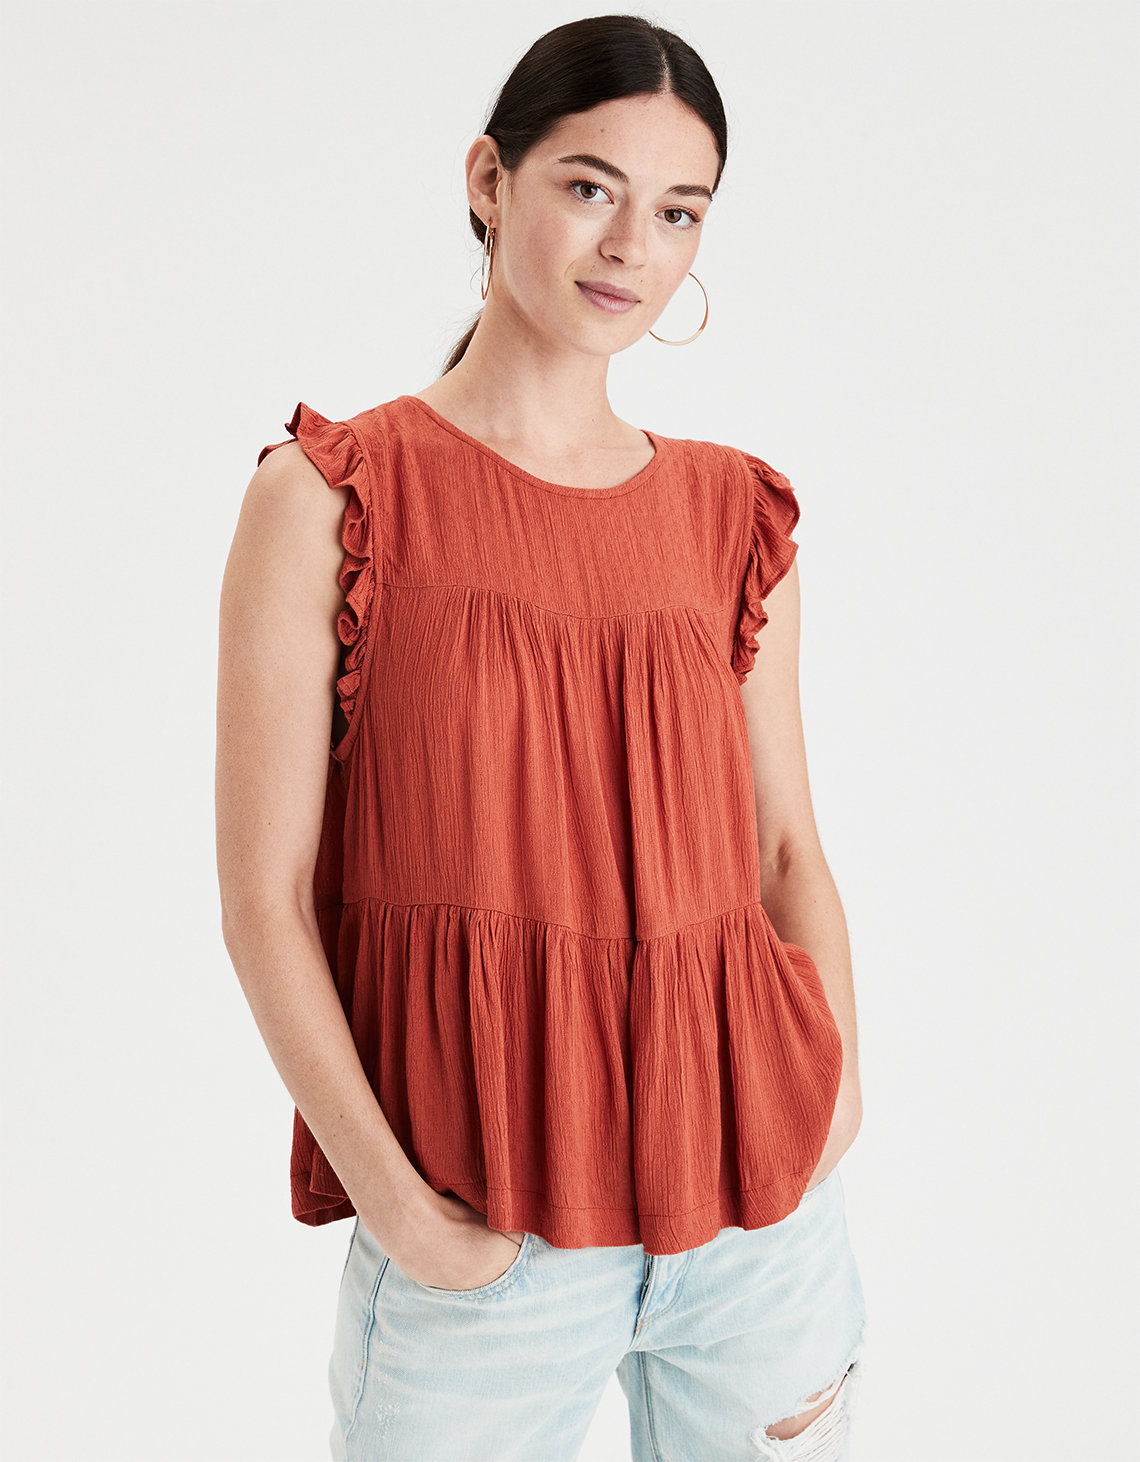 ae high neck shell top, orange